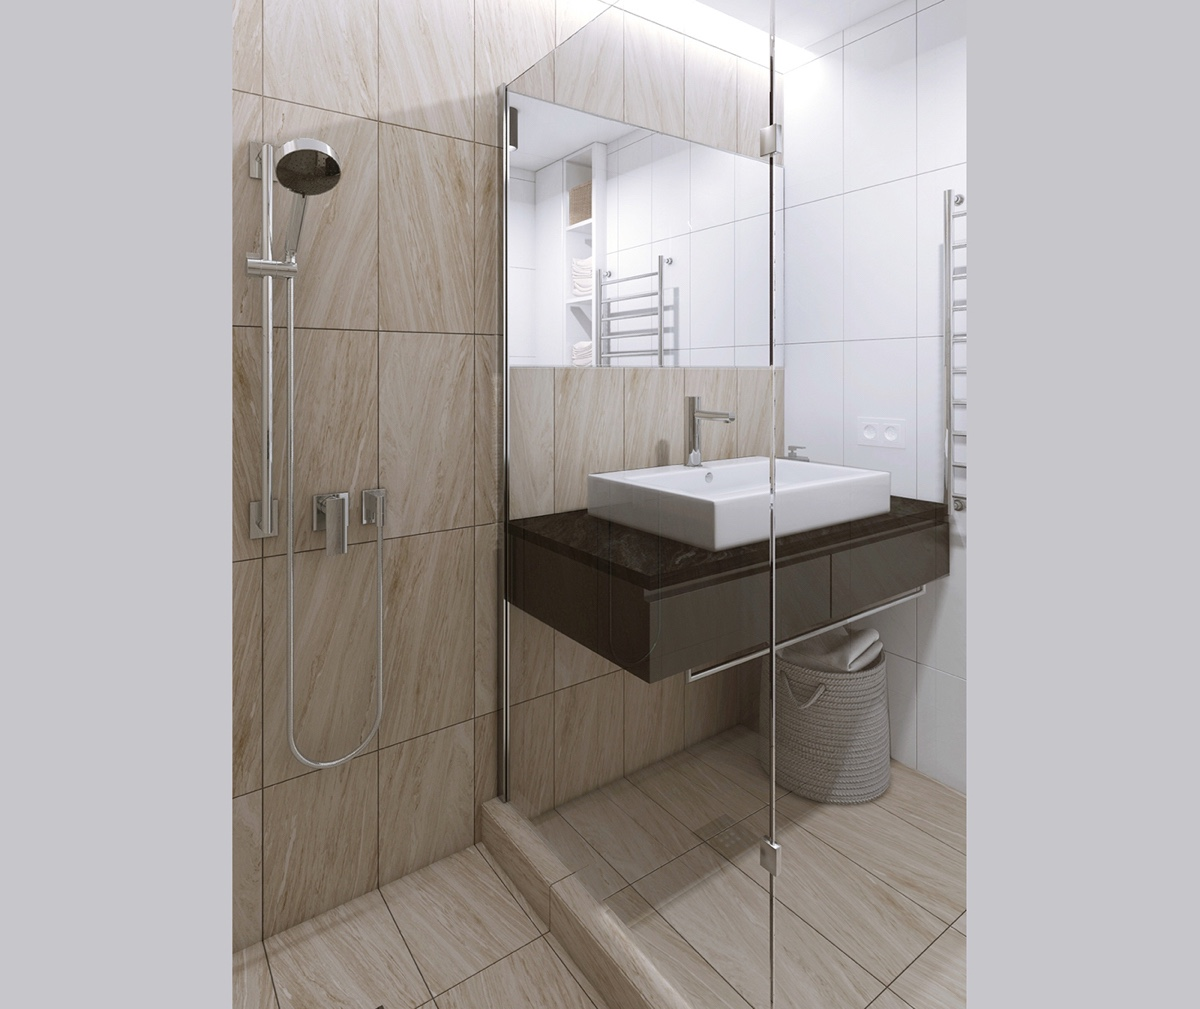 Apartment Bathroom Tiles Apartment: HOME DESIGNING: Relaxing Color Schemes In 3 Efficient Single-Bedroom Apartments [With Floor